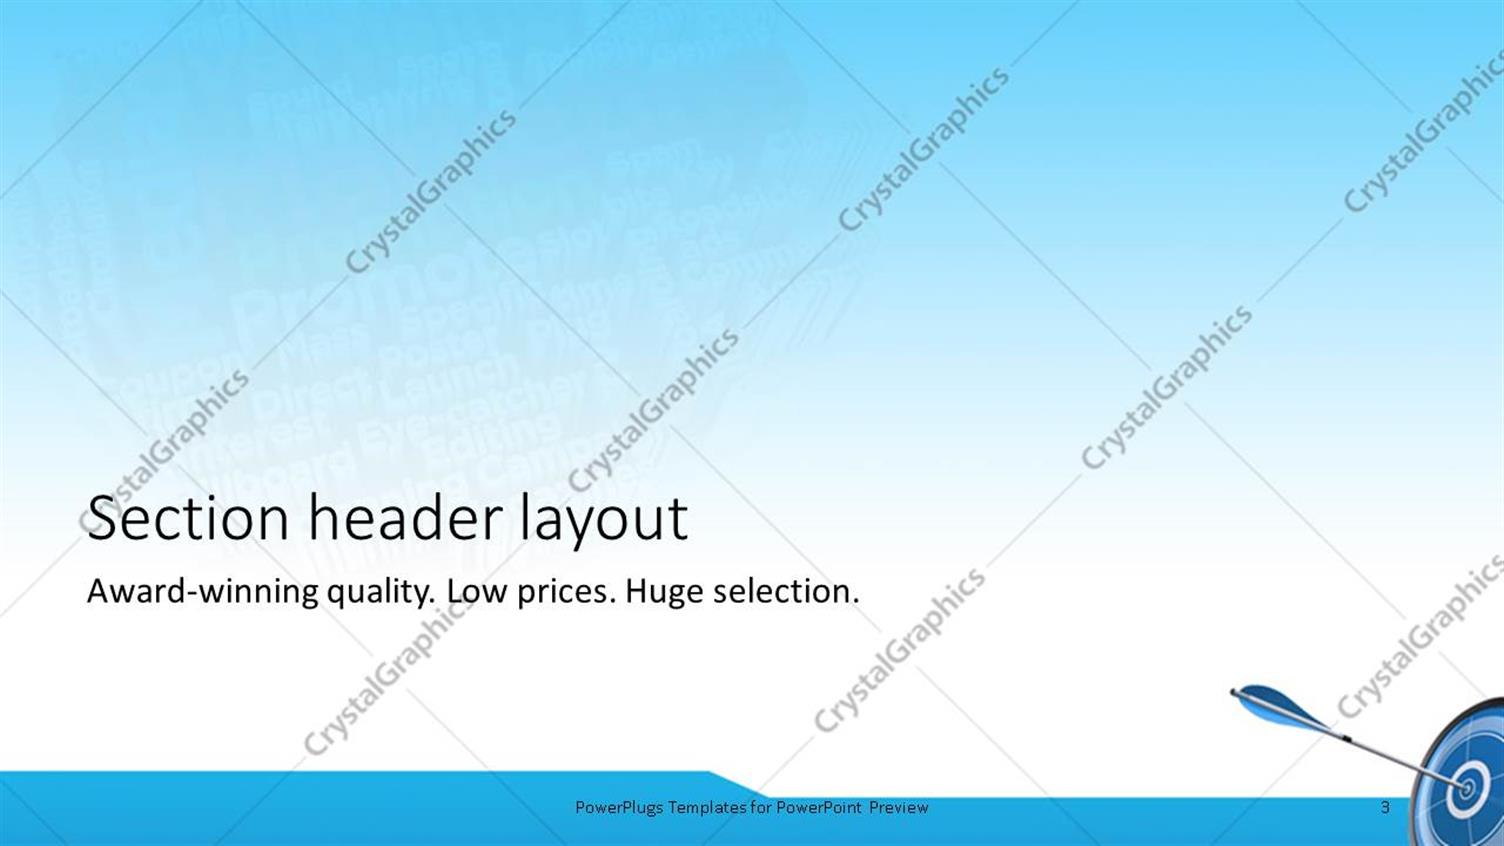 wheel of fortune template for powerpoint image collections, Powerpoint templates